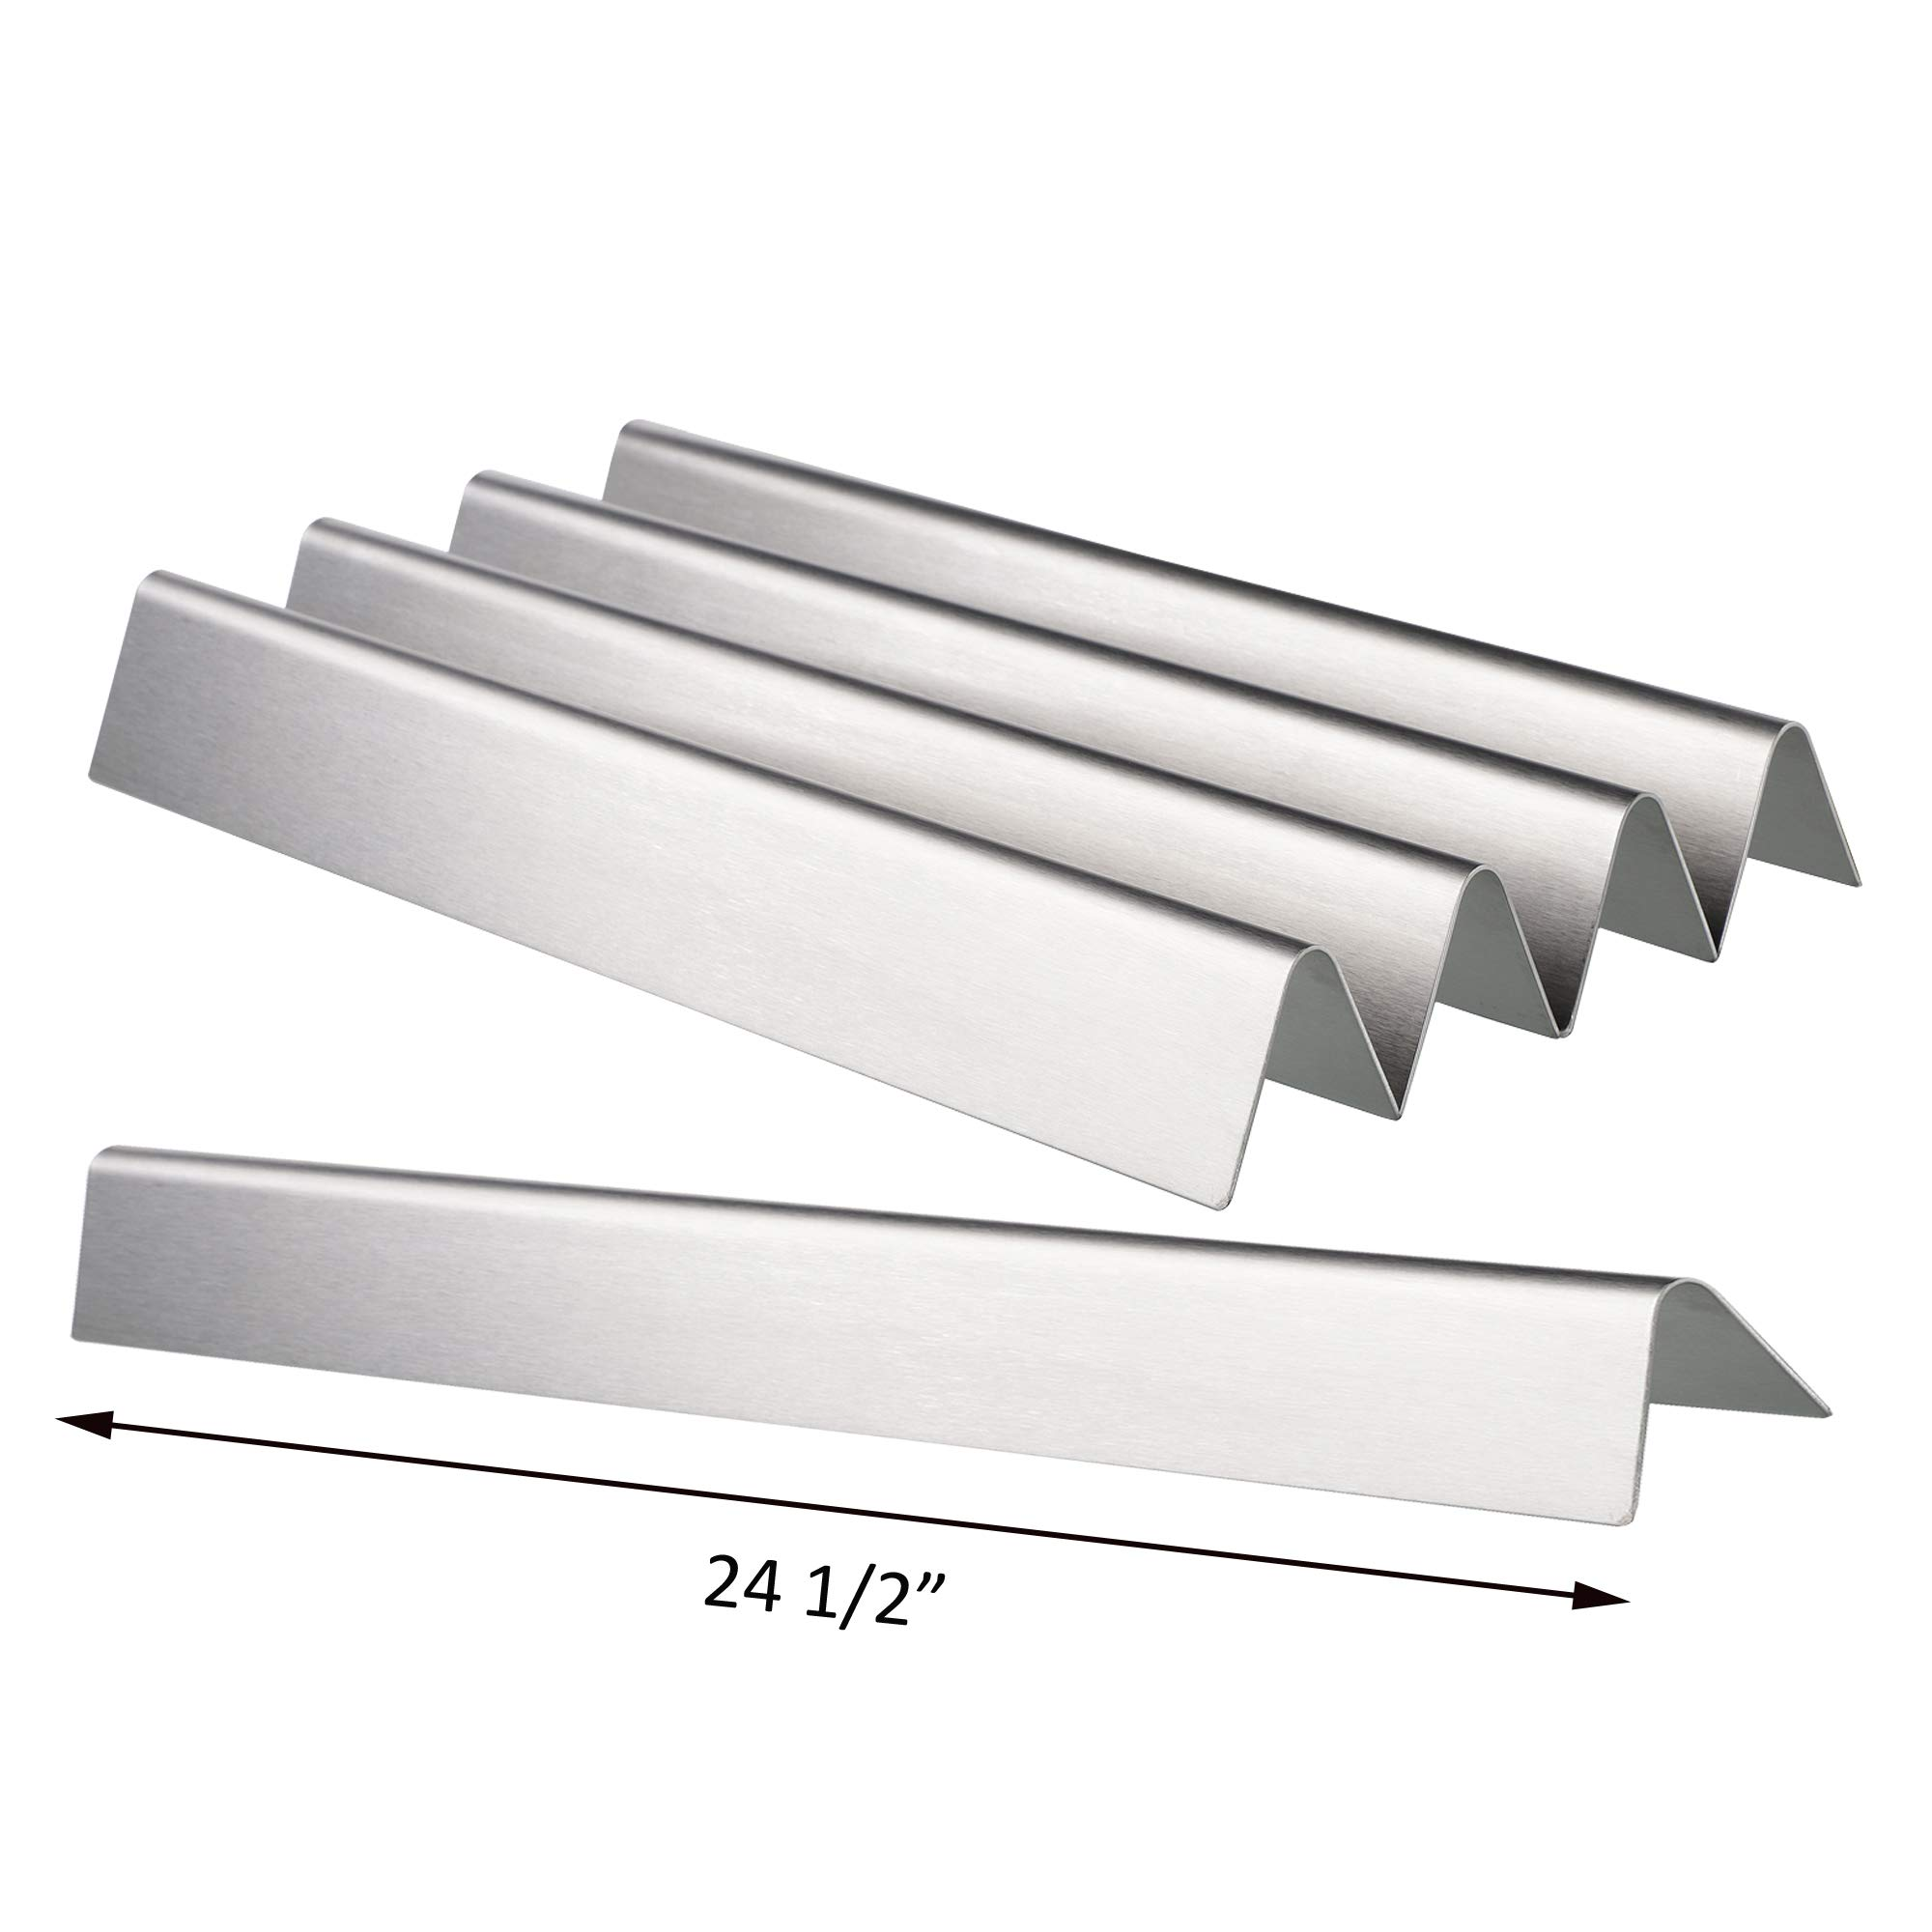 QuliMetal 7540 24.5 Inches Flavor Bars for Weber Genesis 300 Series, E310, E320, S310, S320 (with Side Control Panel), 5 Pack Grill Parts Stainless Steel Heat Plates for Weber 7539 7540, 16 GA by QuliMetal